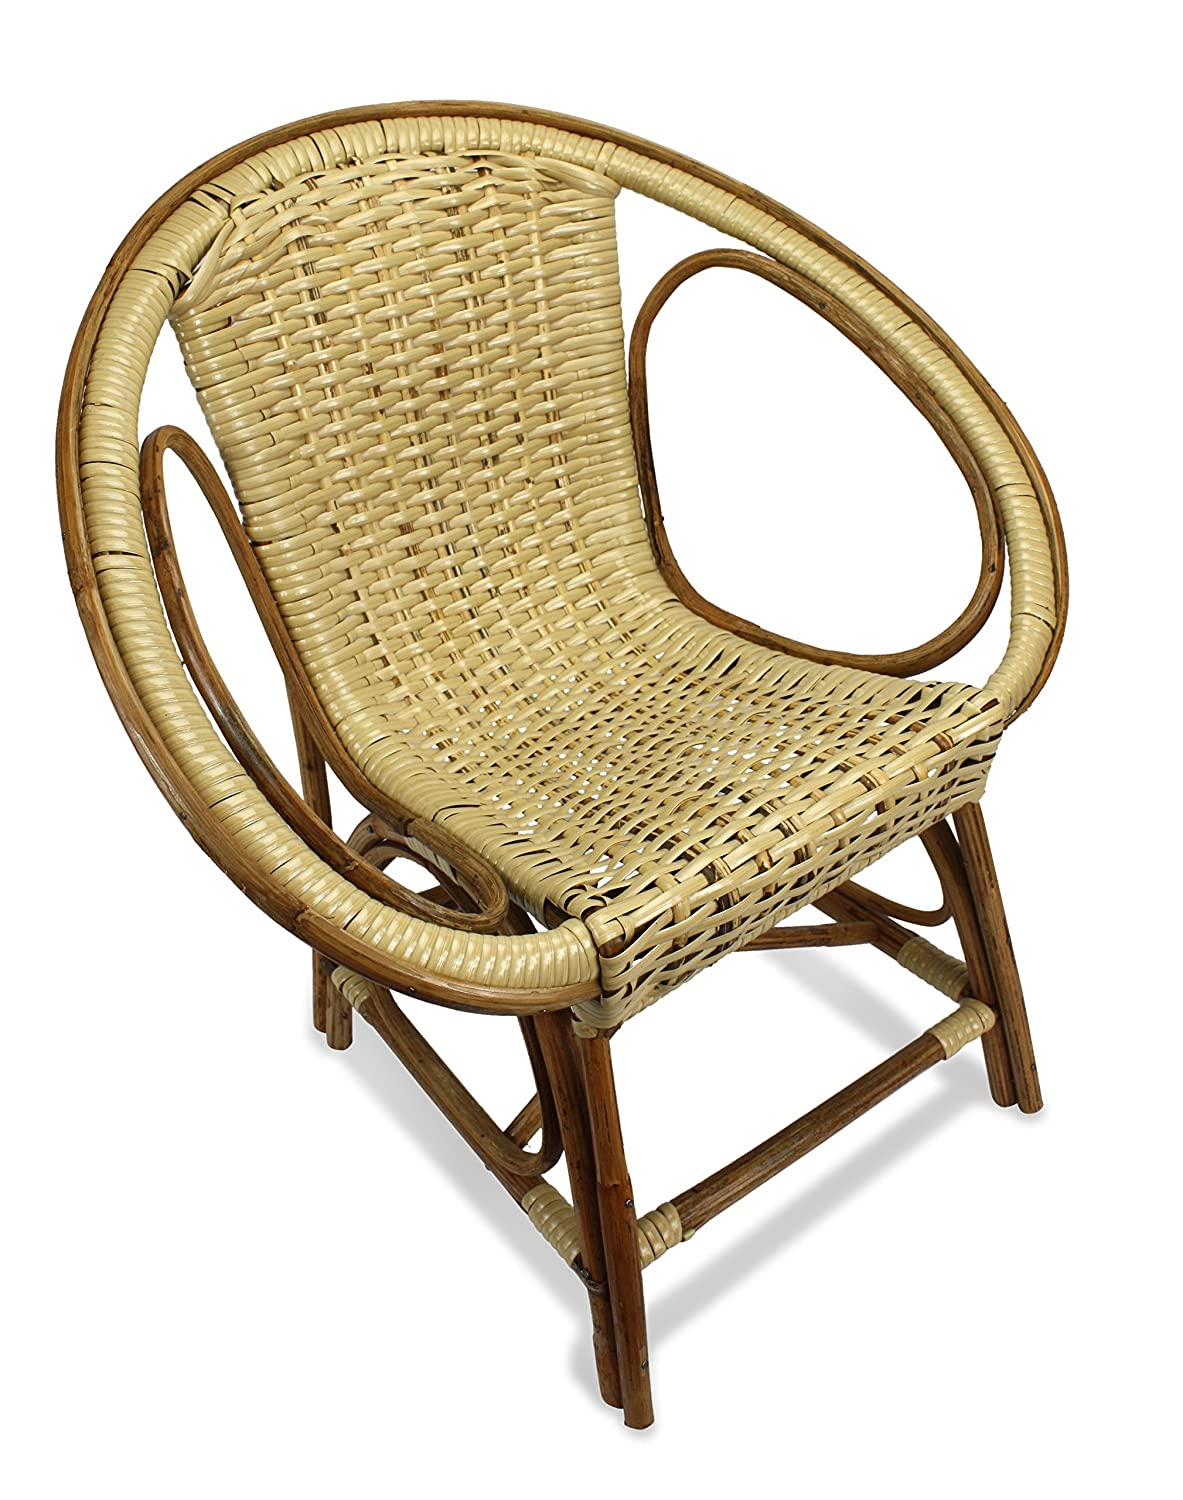 Farang Child's Bamboo Chair